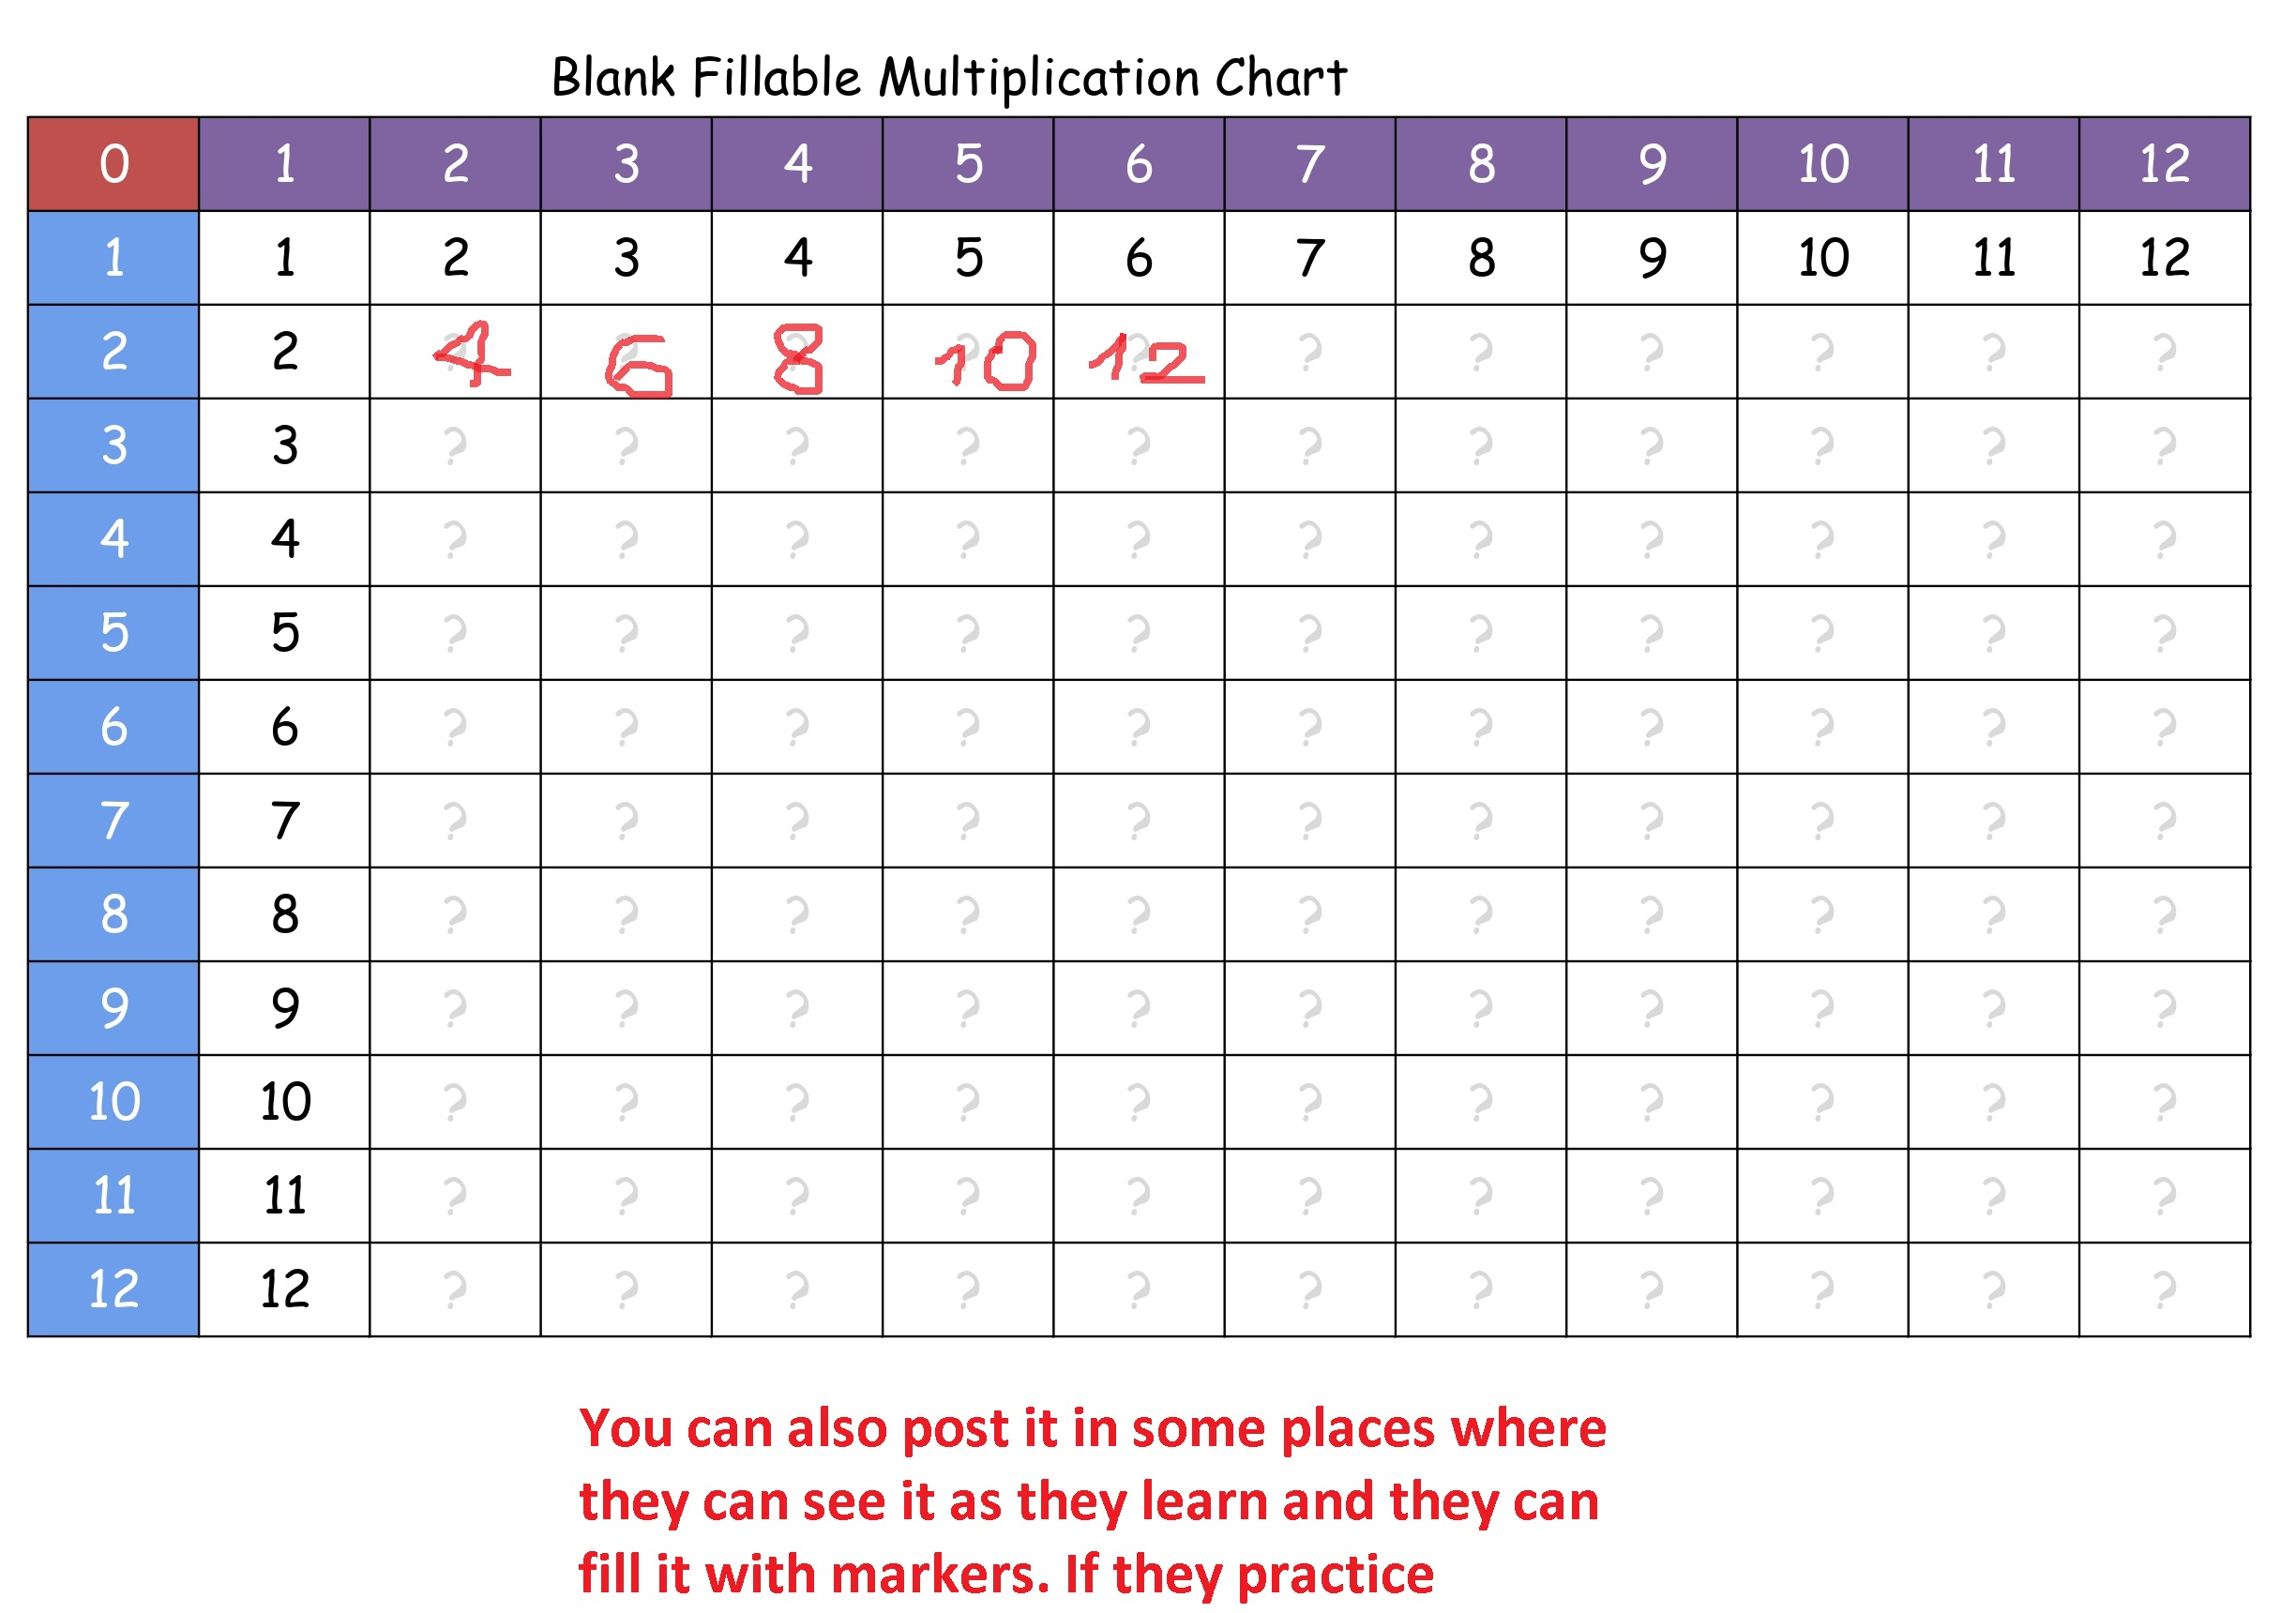 blank fillable multiplication chart explanation